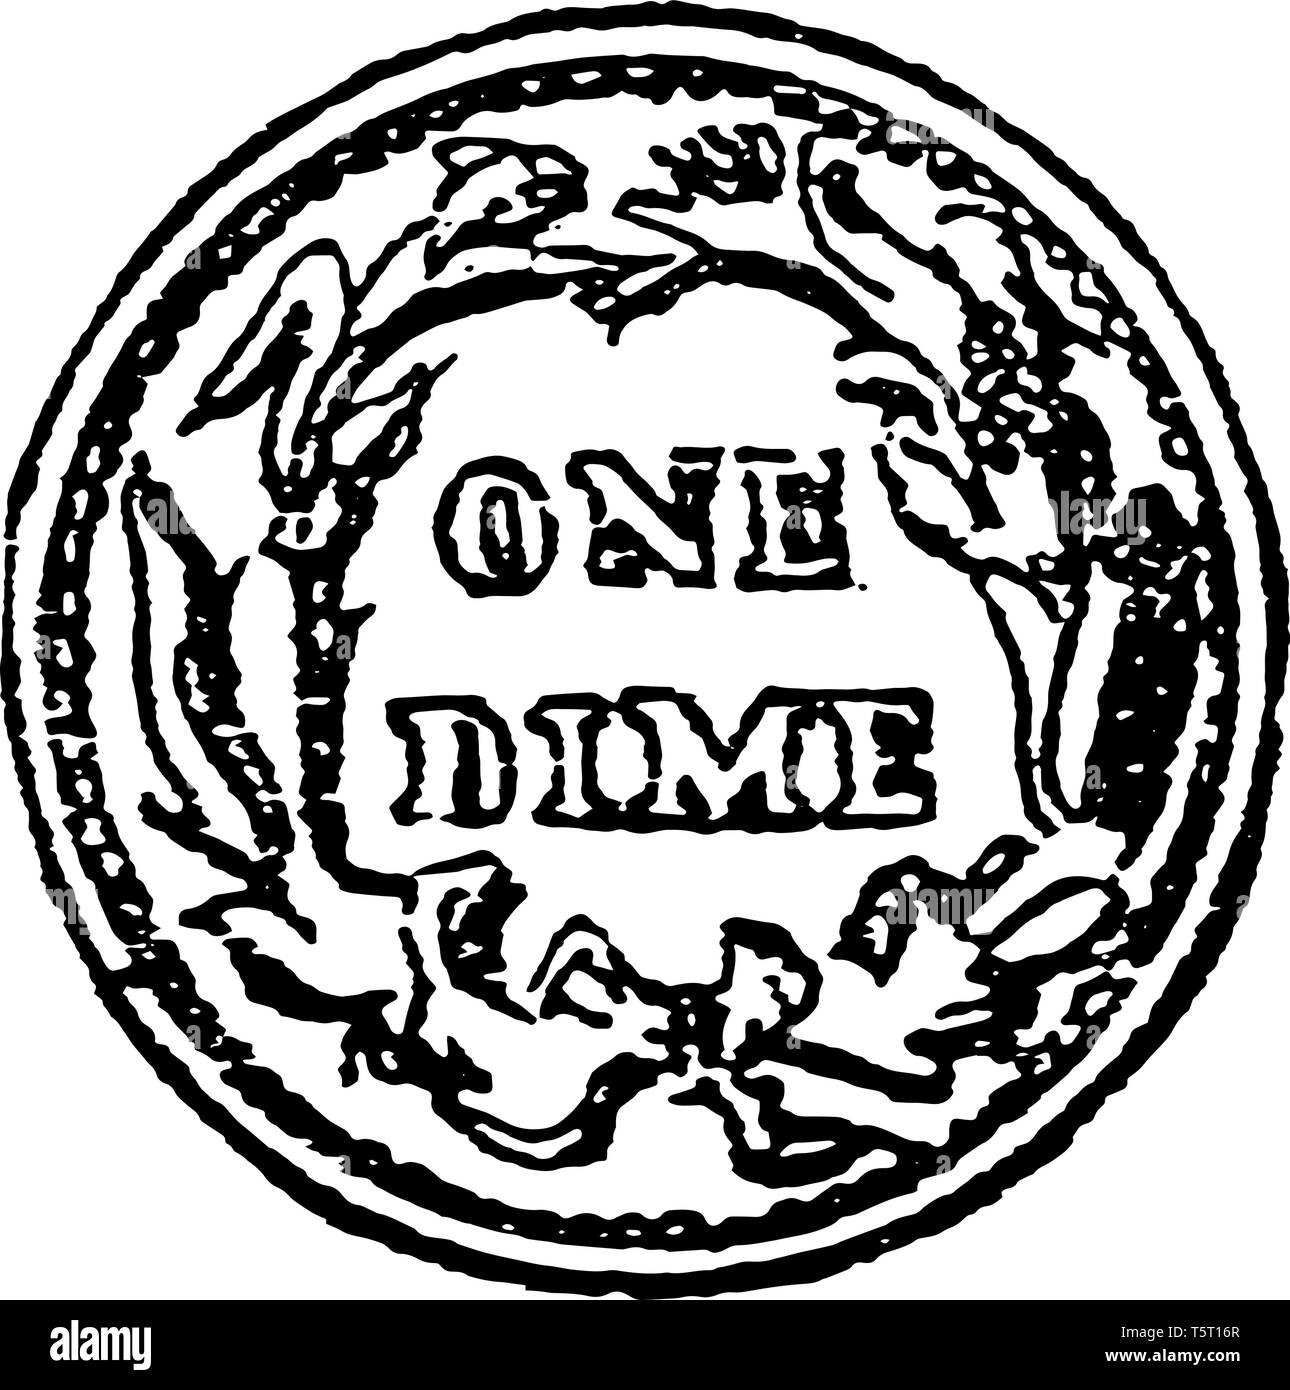 This is a penny coin in the united states of the value of ten cents vintage line drawing or engraving illustration